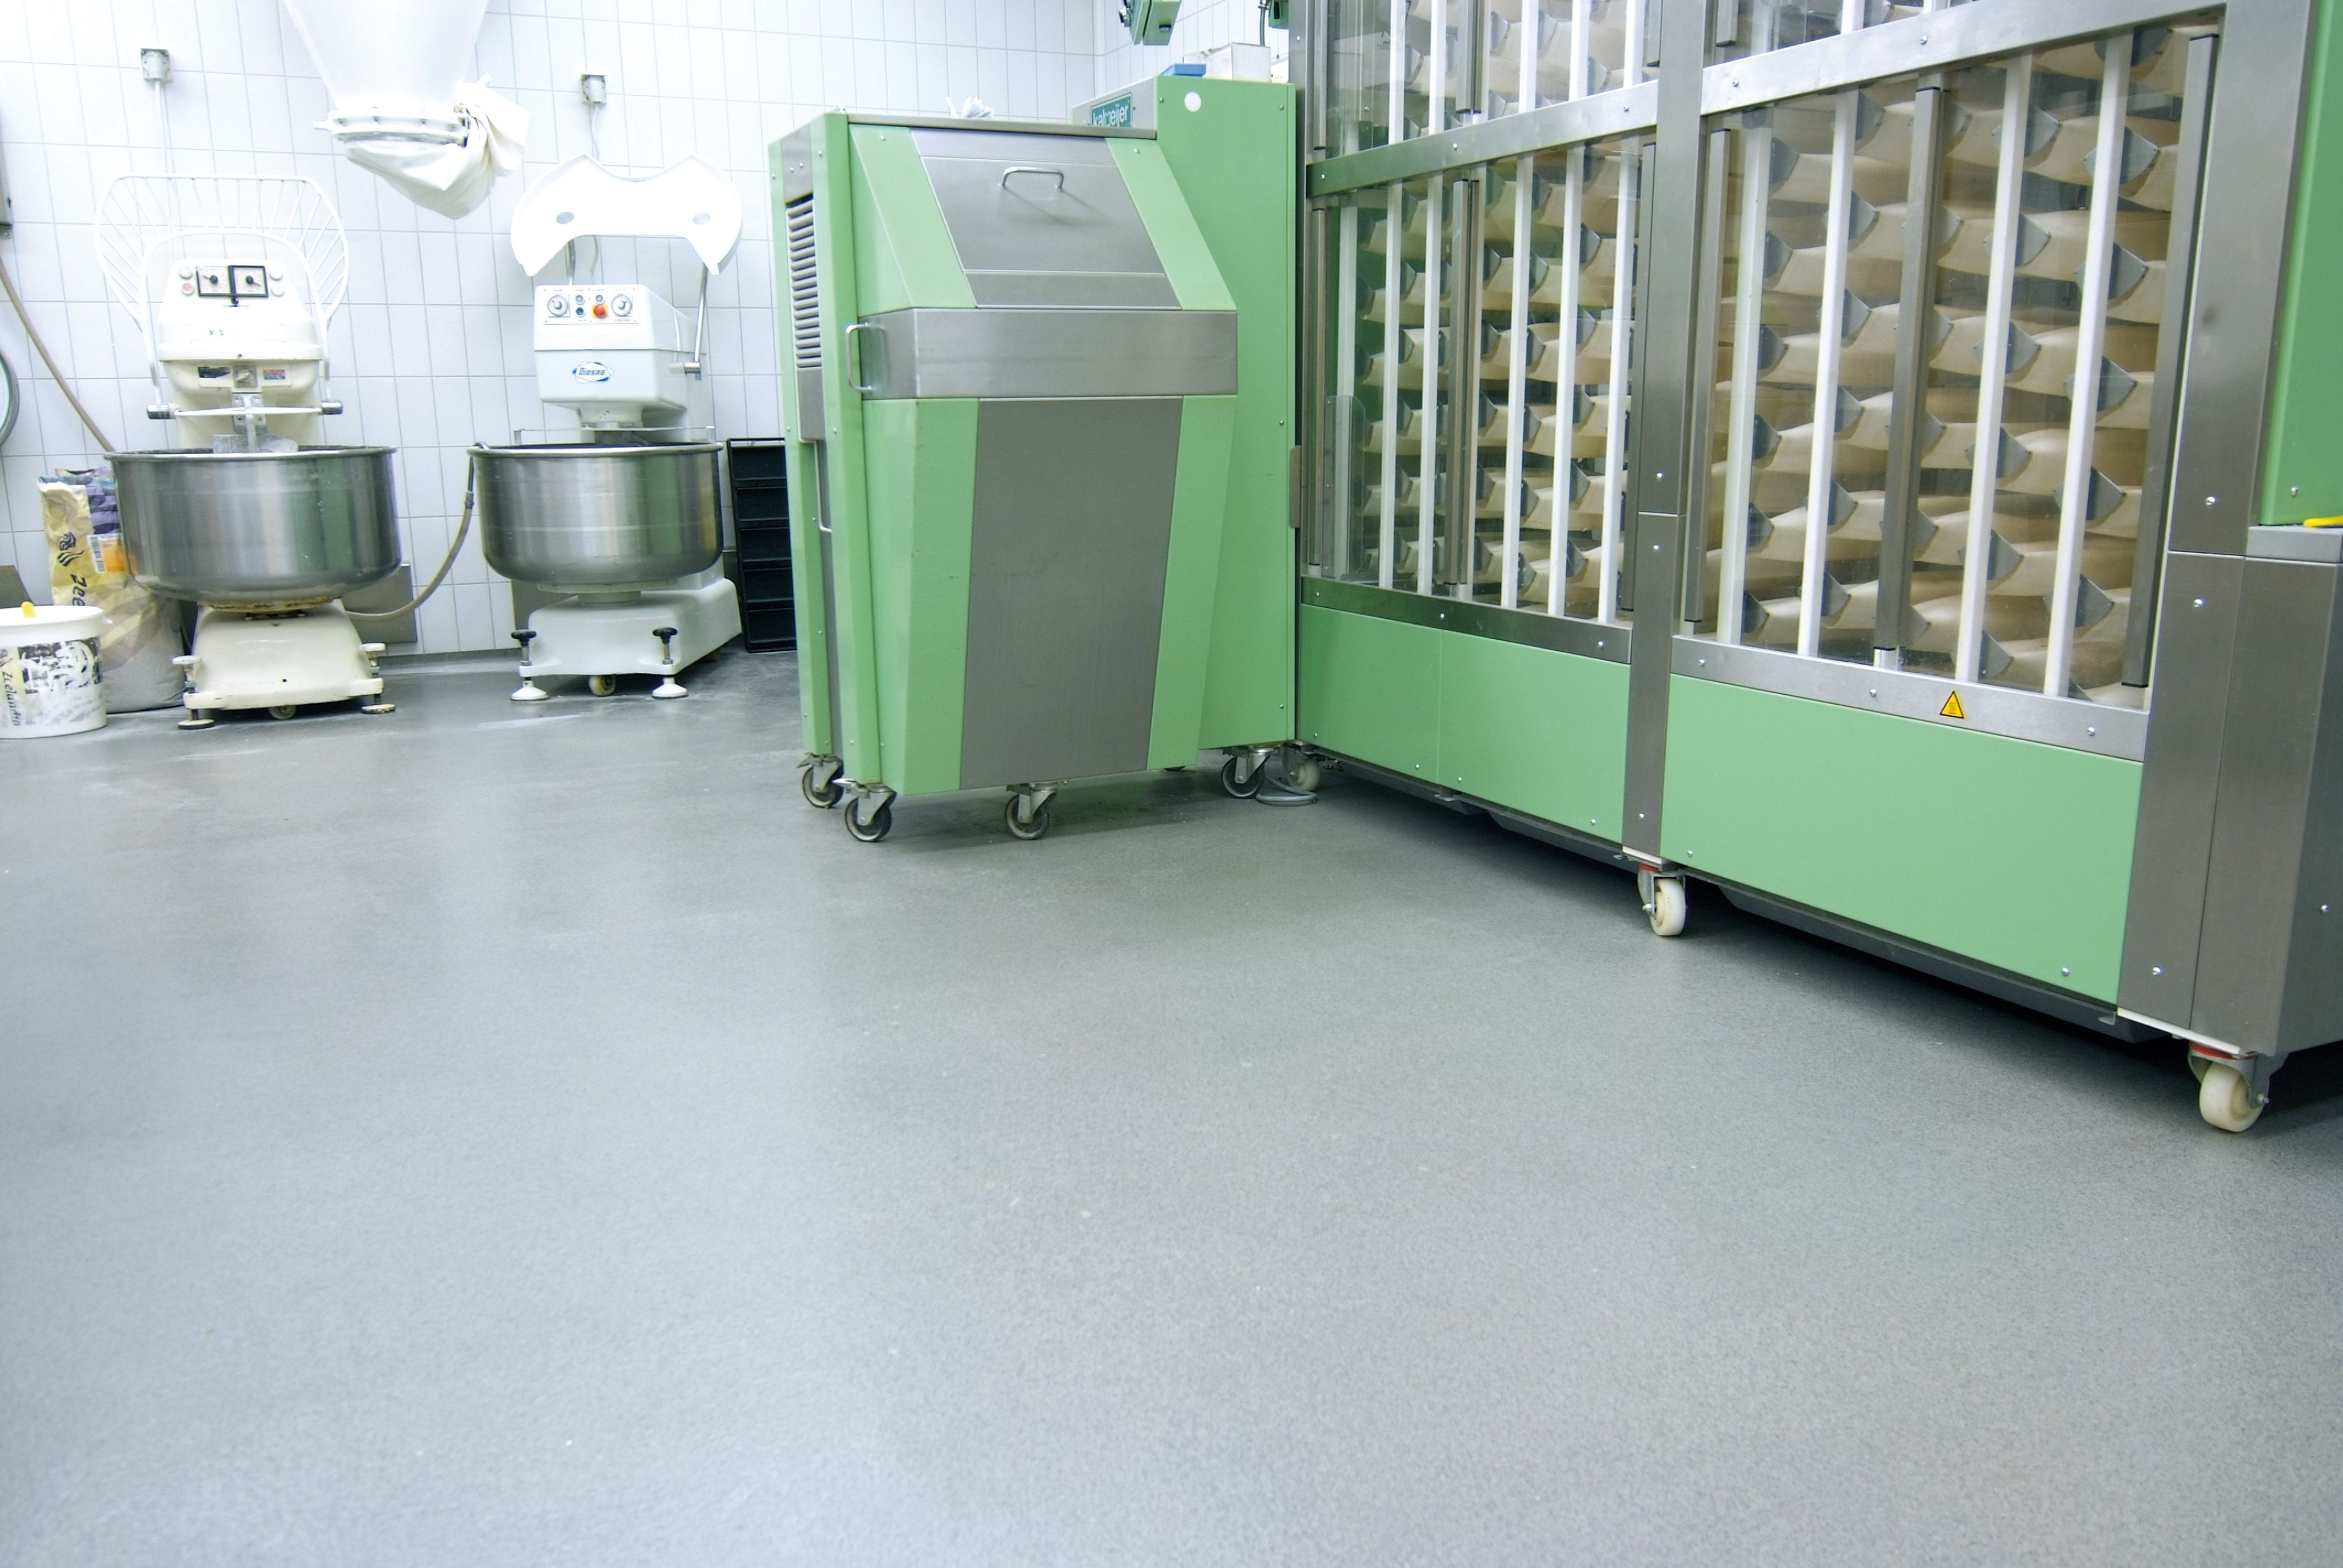 Commercial & Industrial Bakery Flooring EP Floors specializes in ...